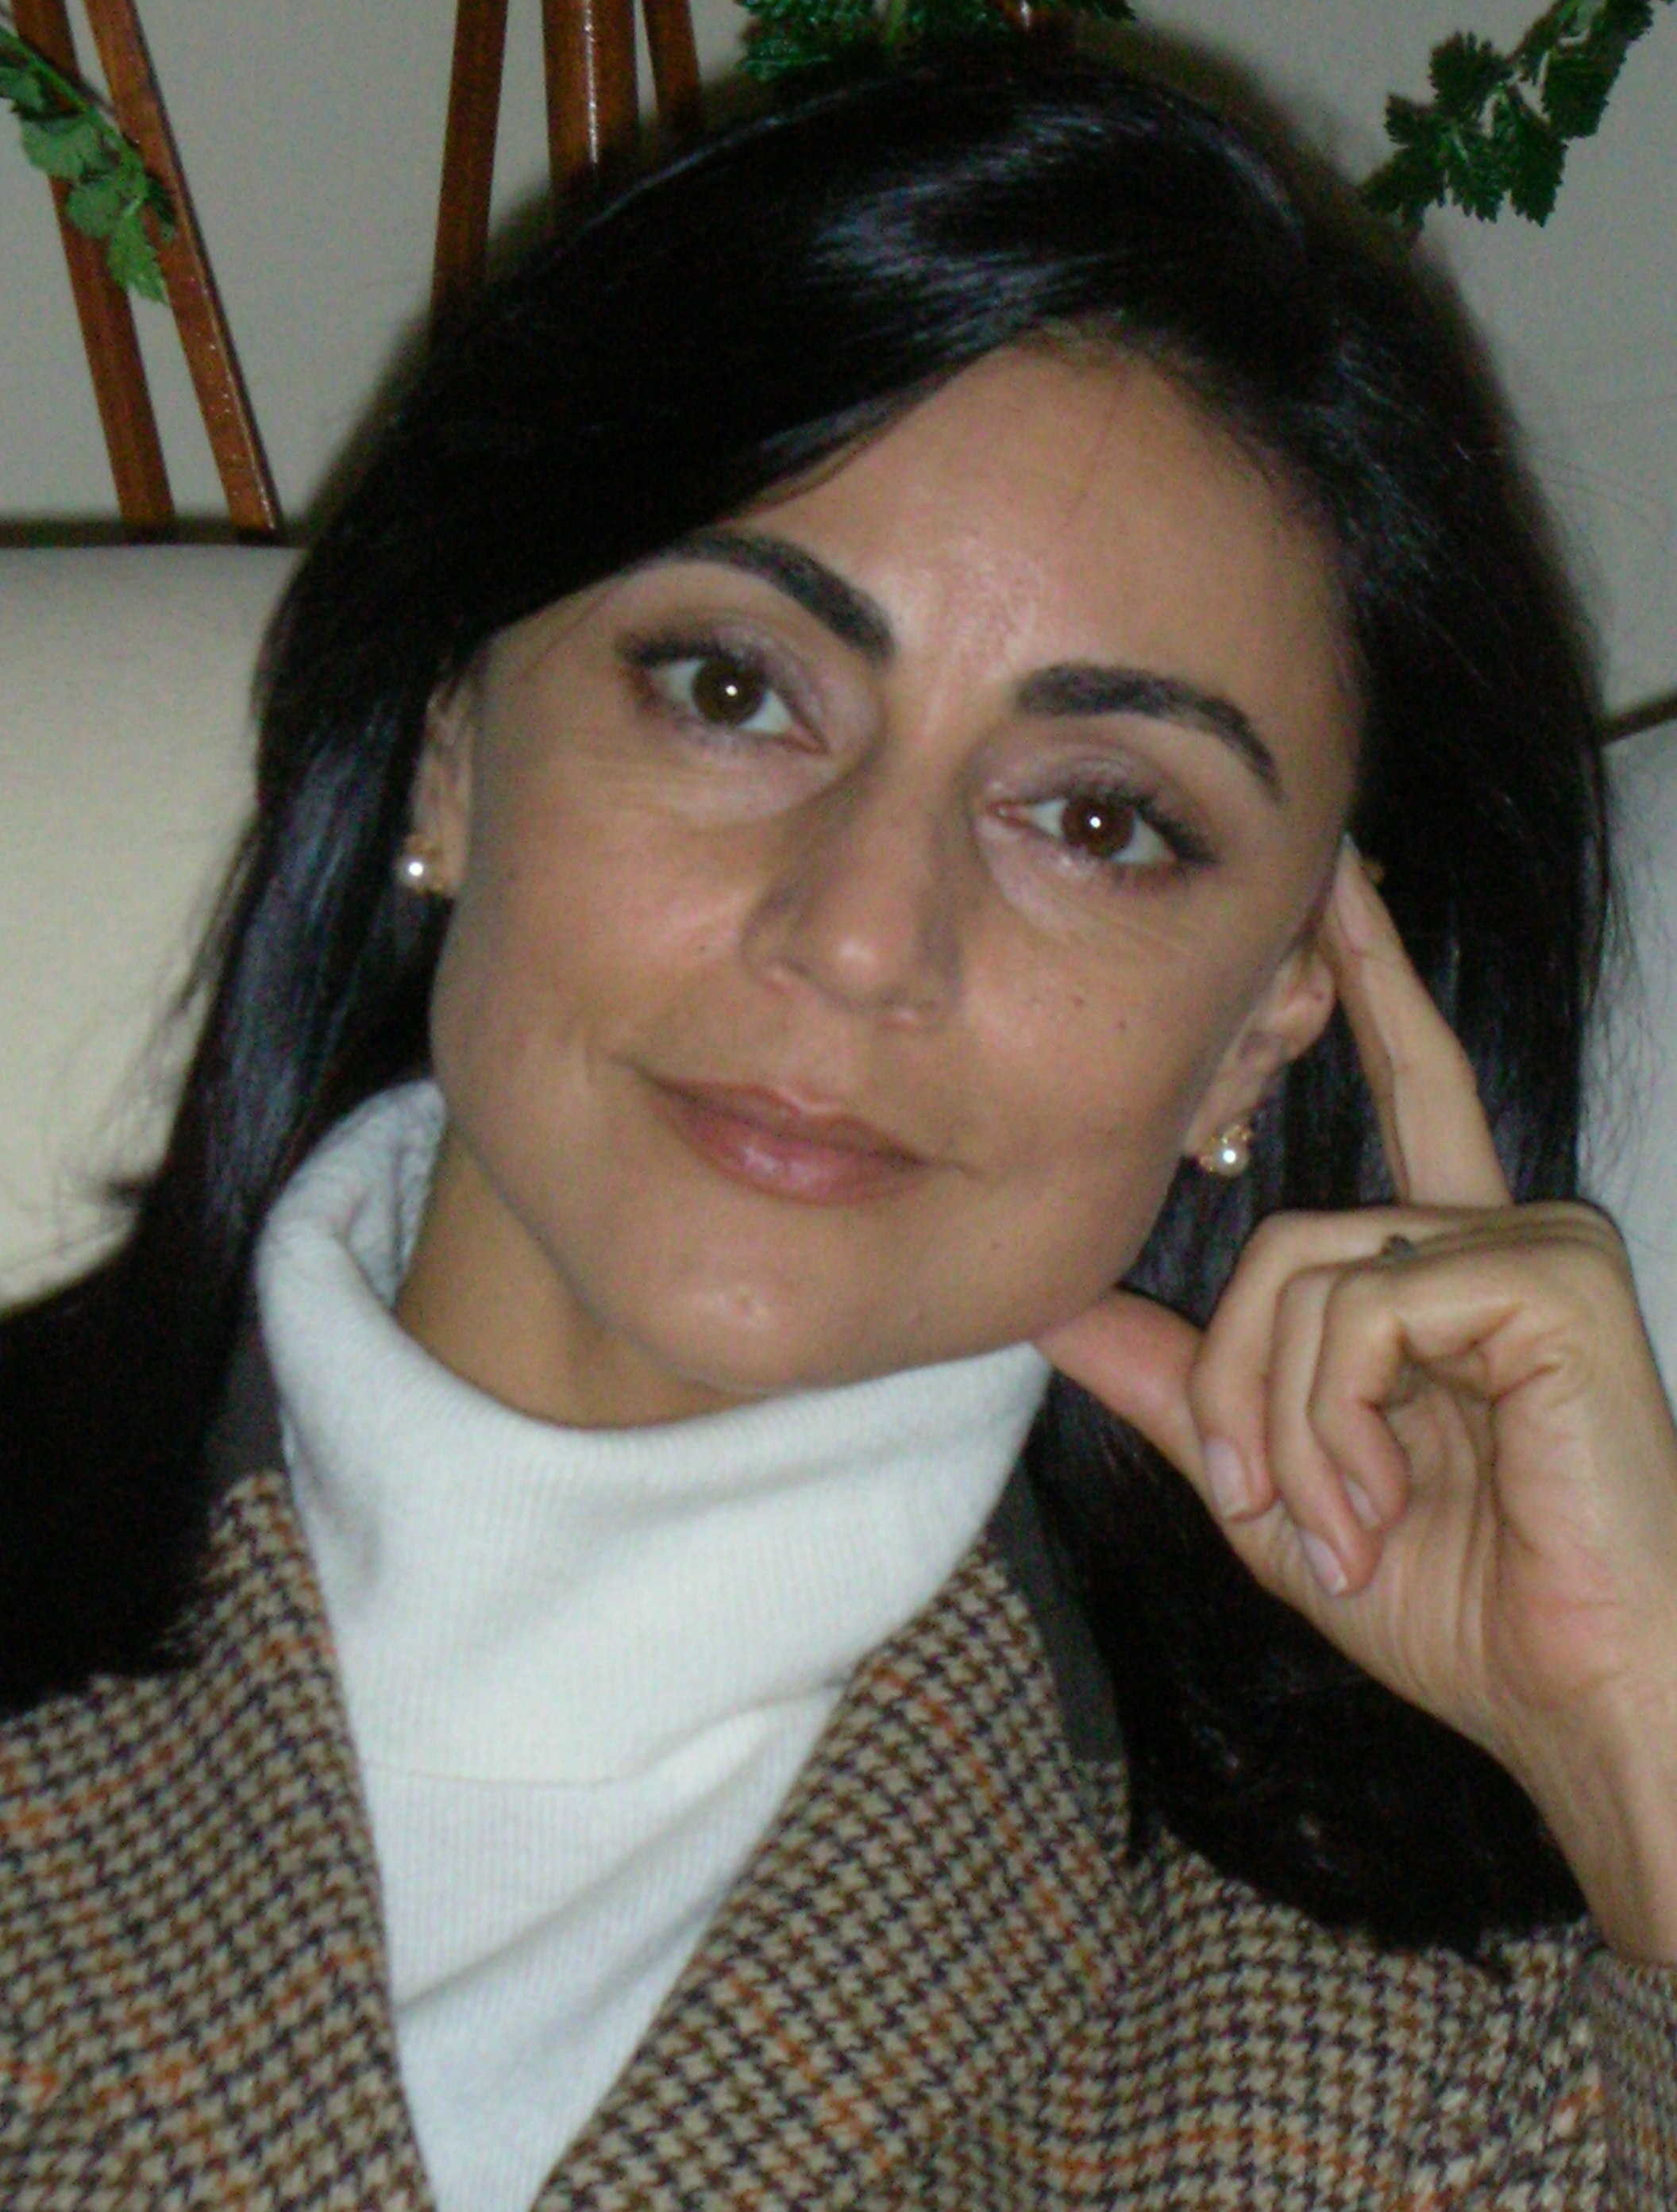 sibel edmonds boston bombas